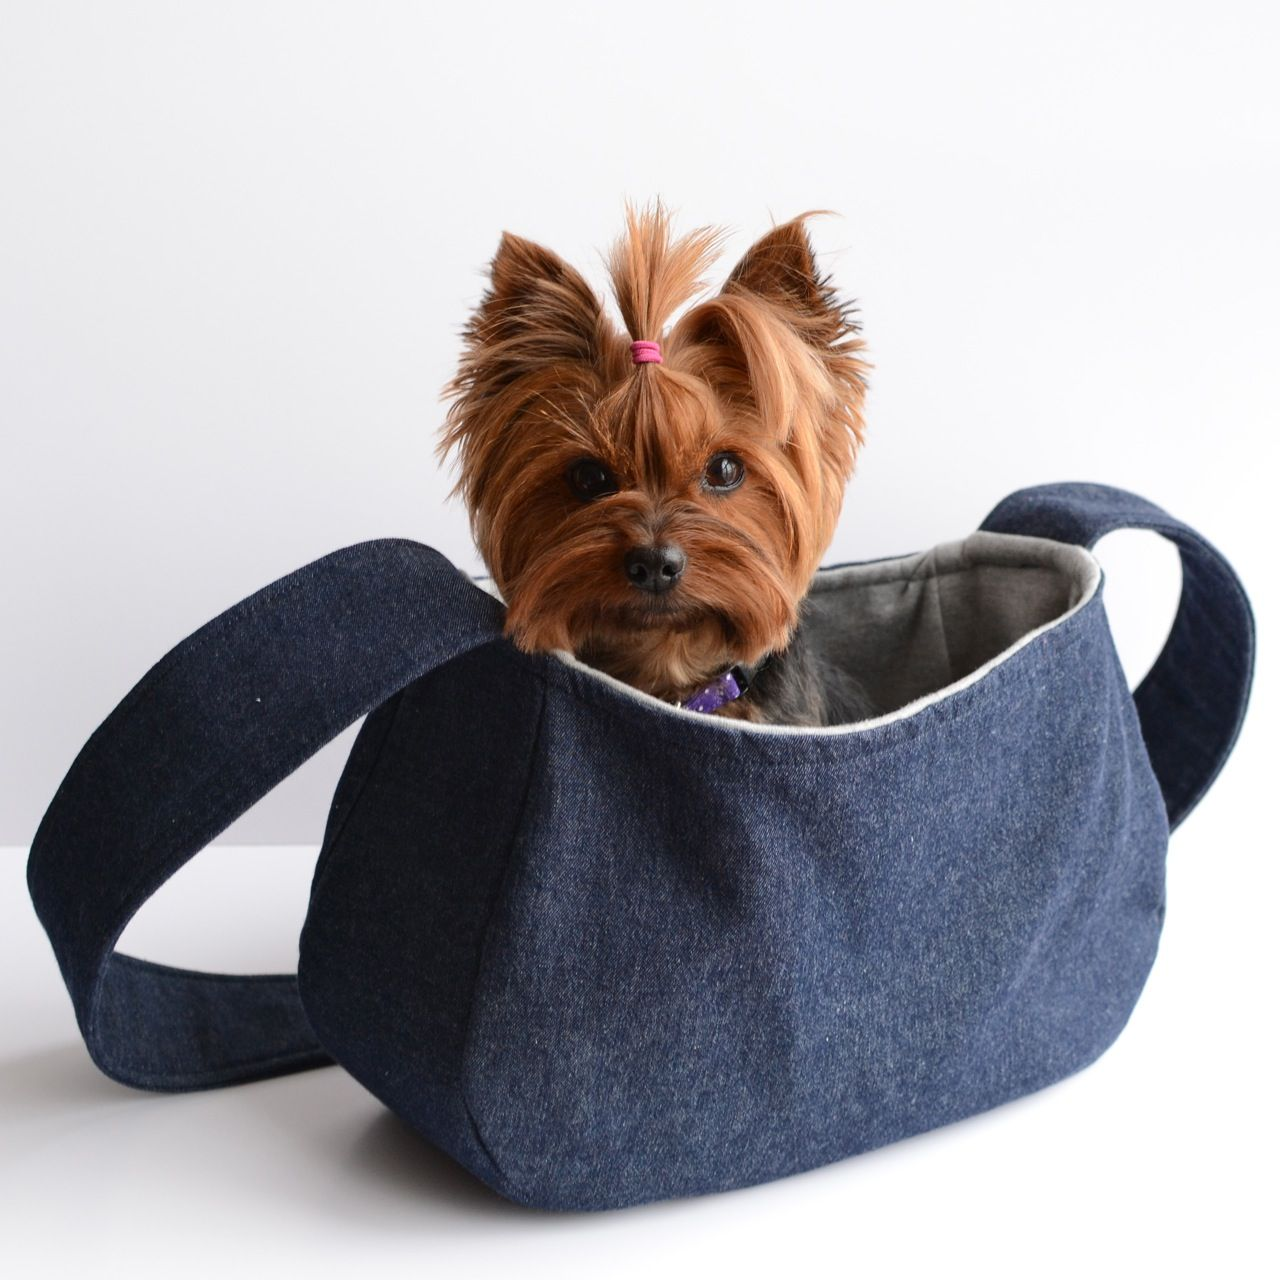 Doggy sling bag pattern sewing and crochet pinterest - Pattern for dog carrier sling ...